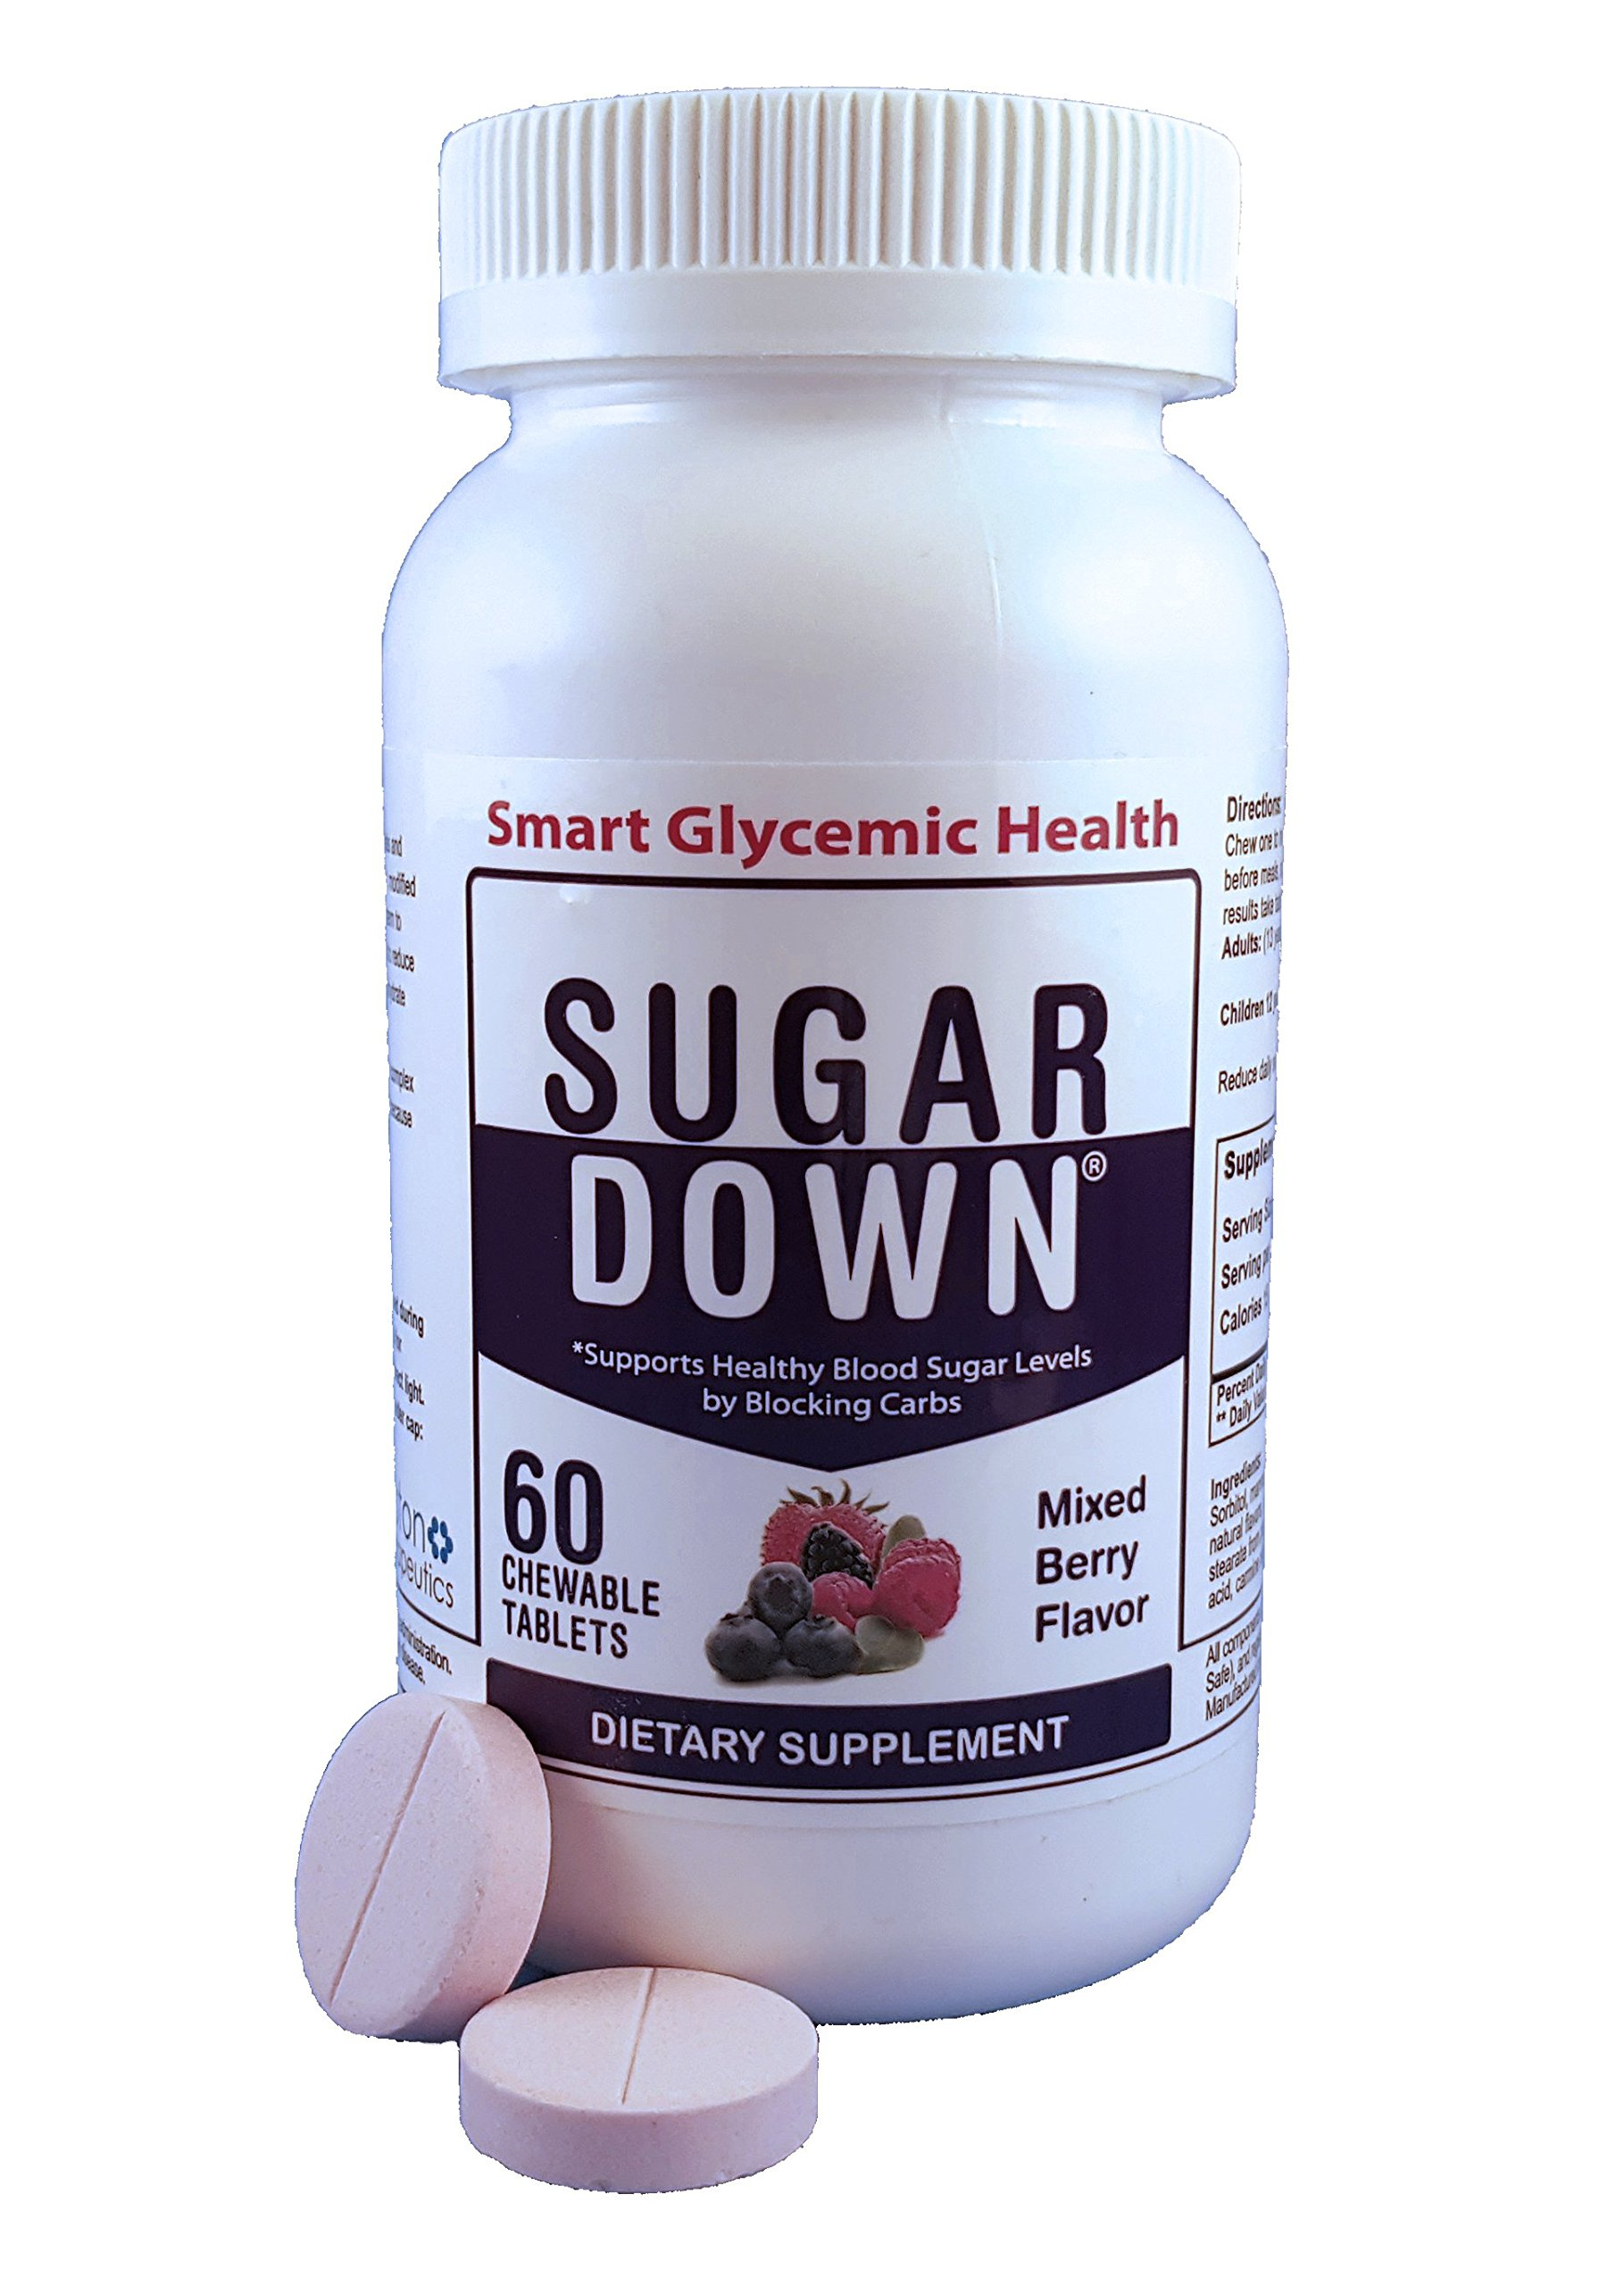 SugarDown Blood Sugar Support. Naturally Block Carbs. 1 Bottle. 60 Chewable Tablets. Mixed Berry Flavor.  by SUGARDOWN